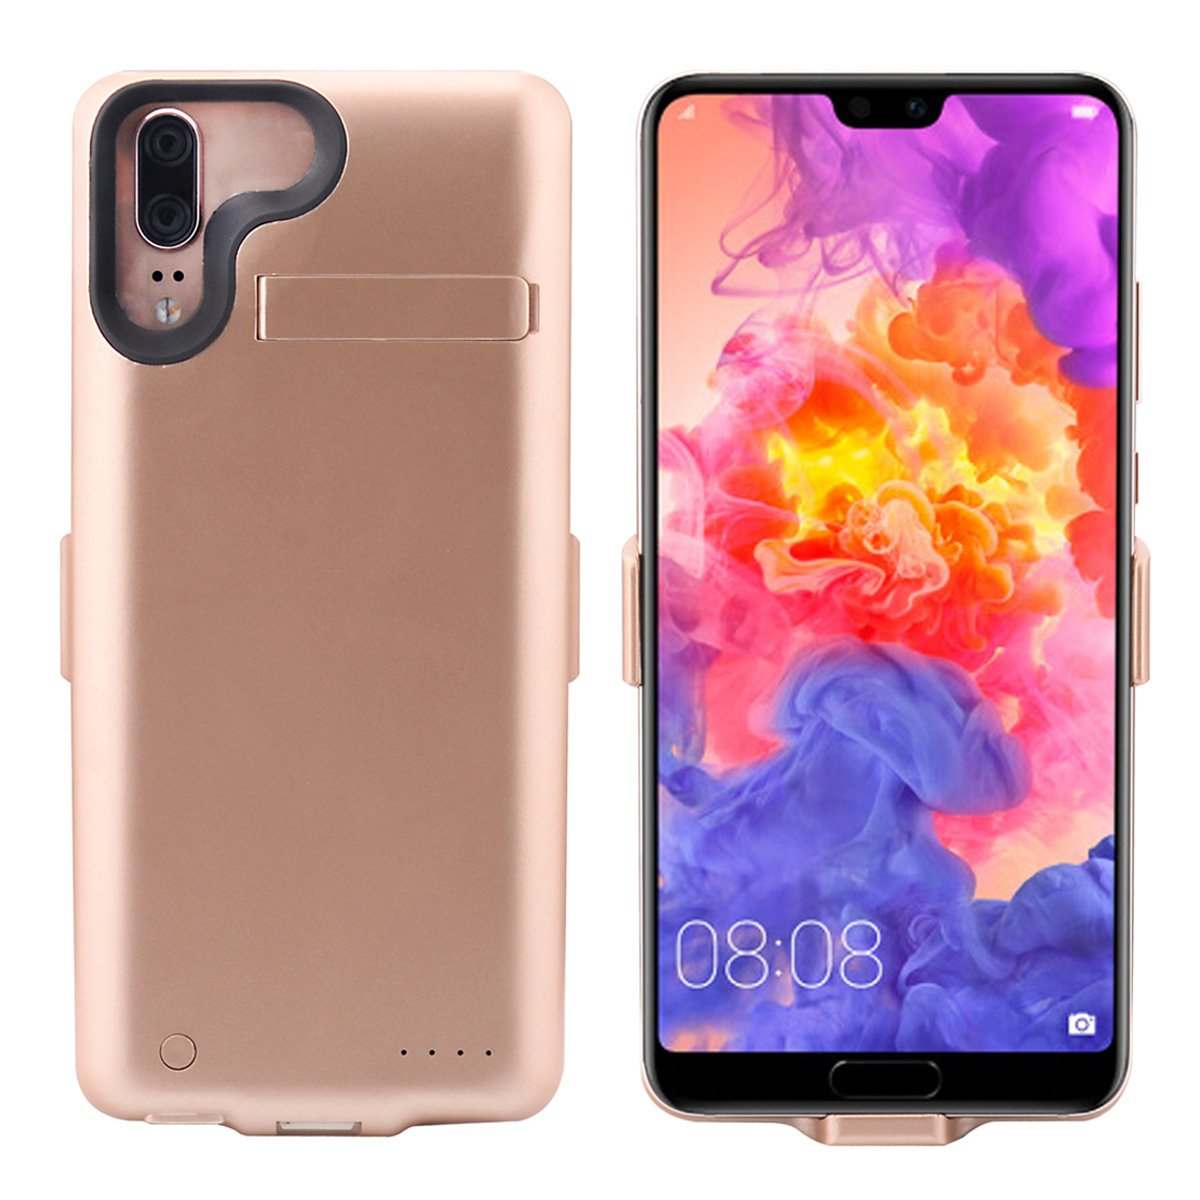 AICEDA Huawei P20 Battery Case Juice Slim Rechargeable Charging Case Portable External Charger Power Case Replacement for Huawei P20 Extended Battery Juice - Golden